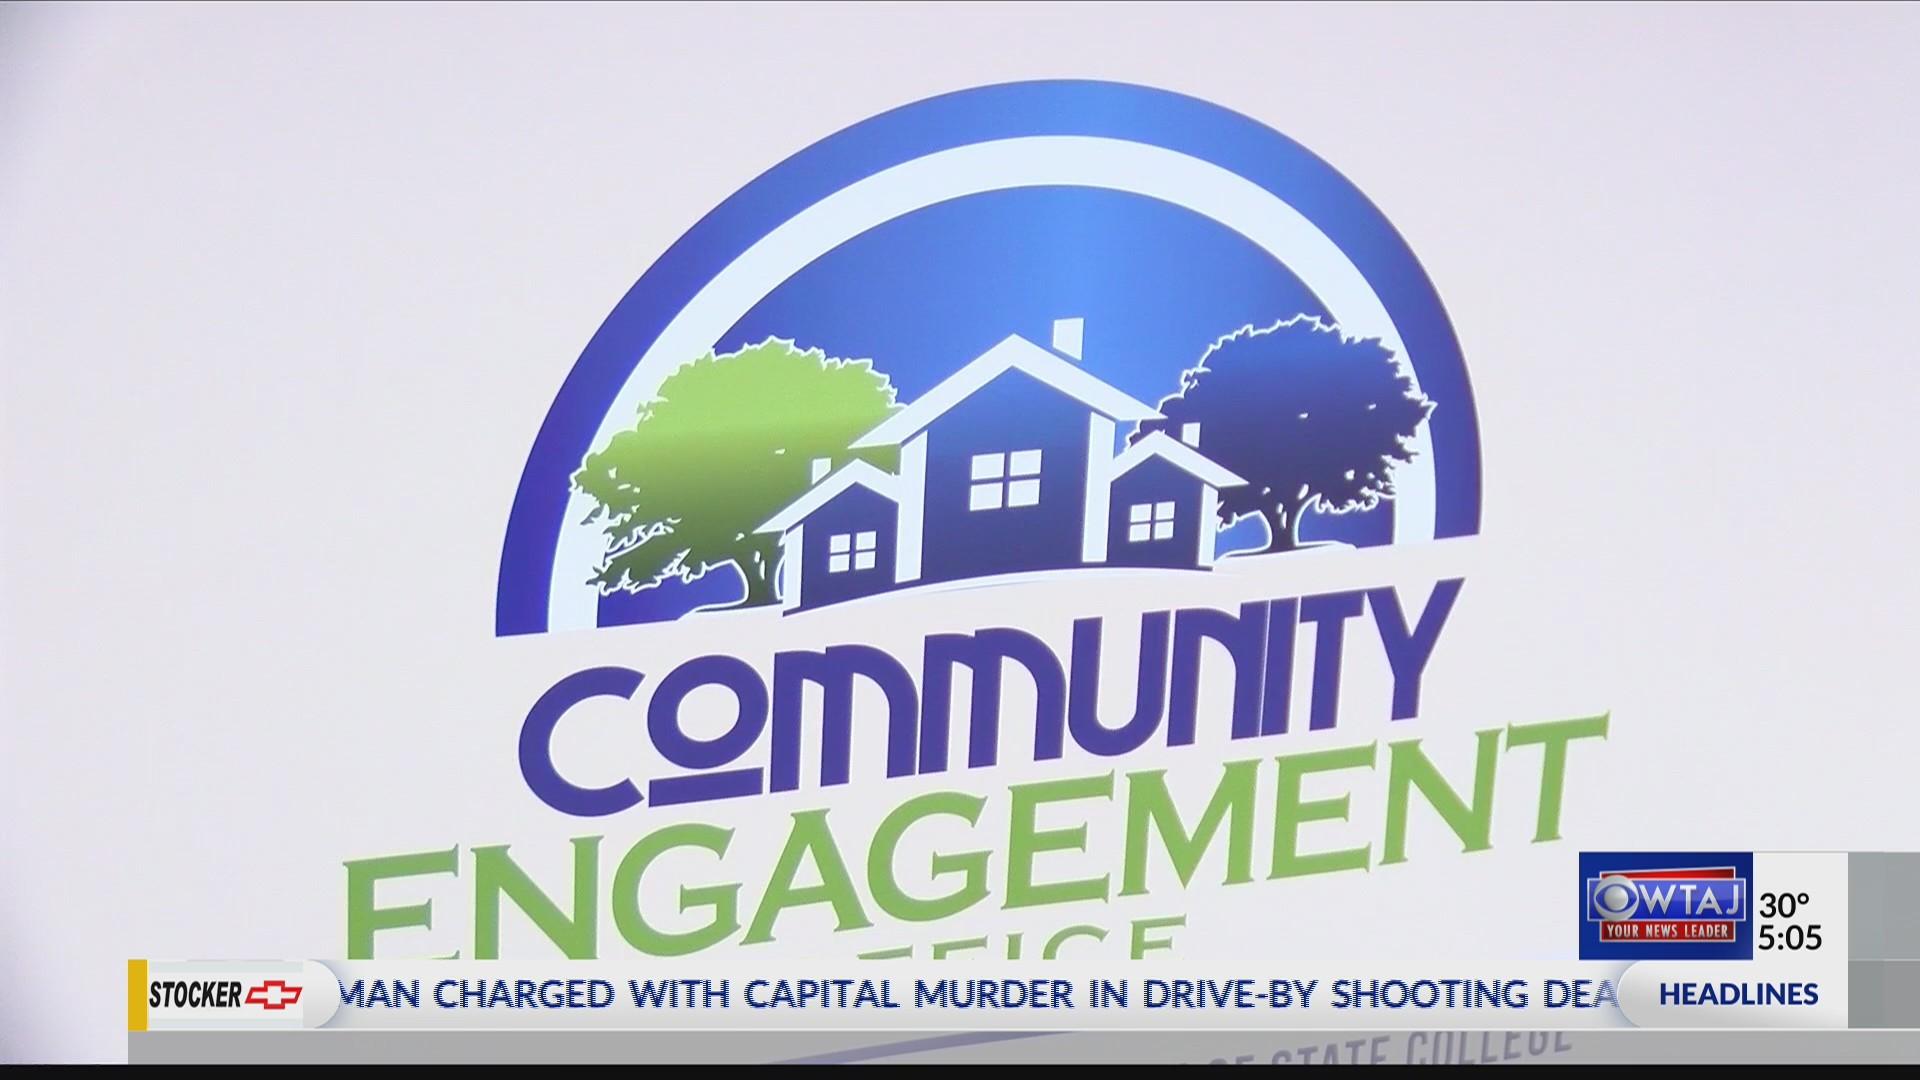 New_CBICC_Engagement_Initiative_in_Centr_0_20190107221501